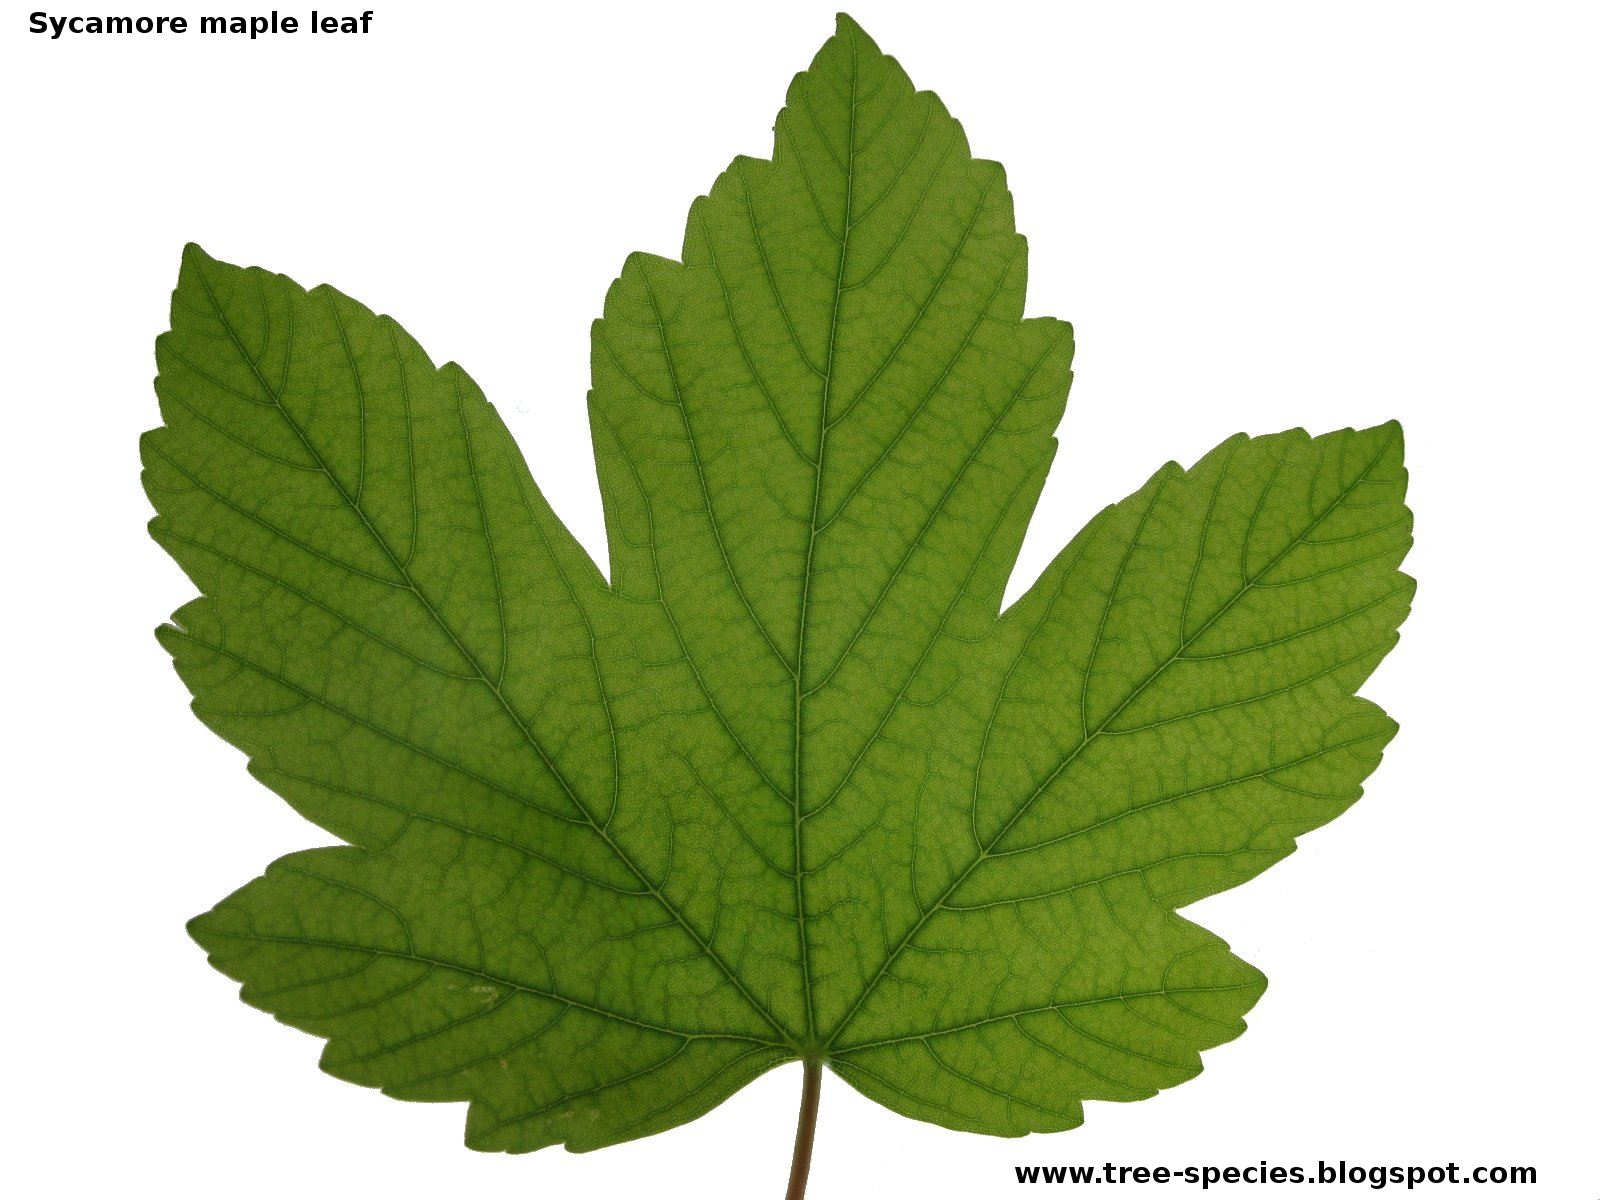 Tree Leaf Images · Sycamore Leaf - Sycamore Tree Leaf PNG